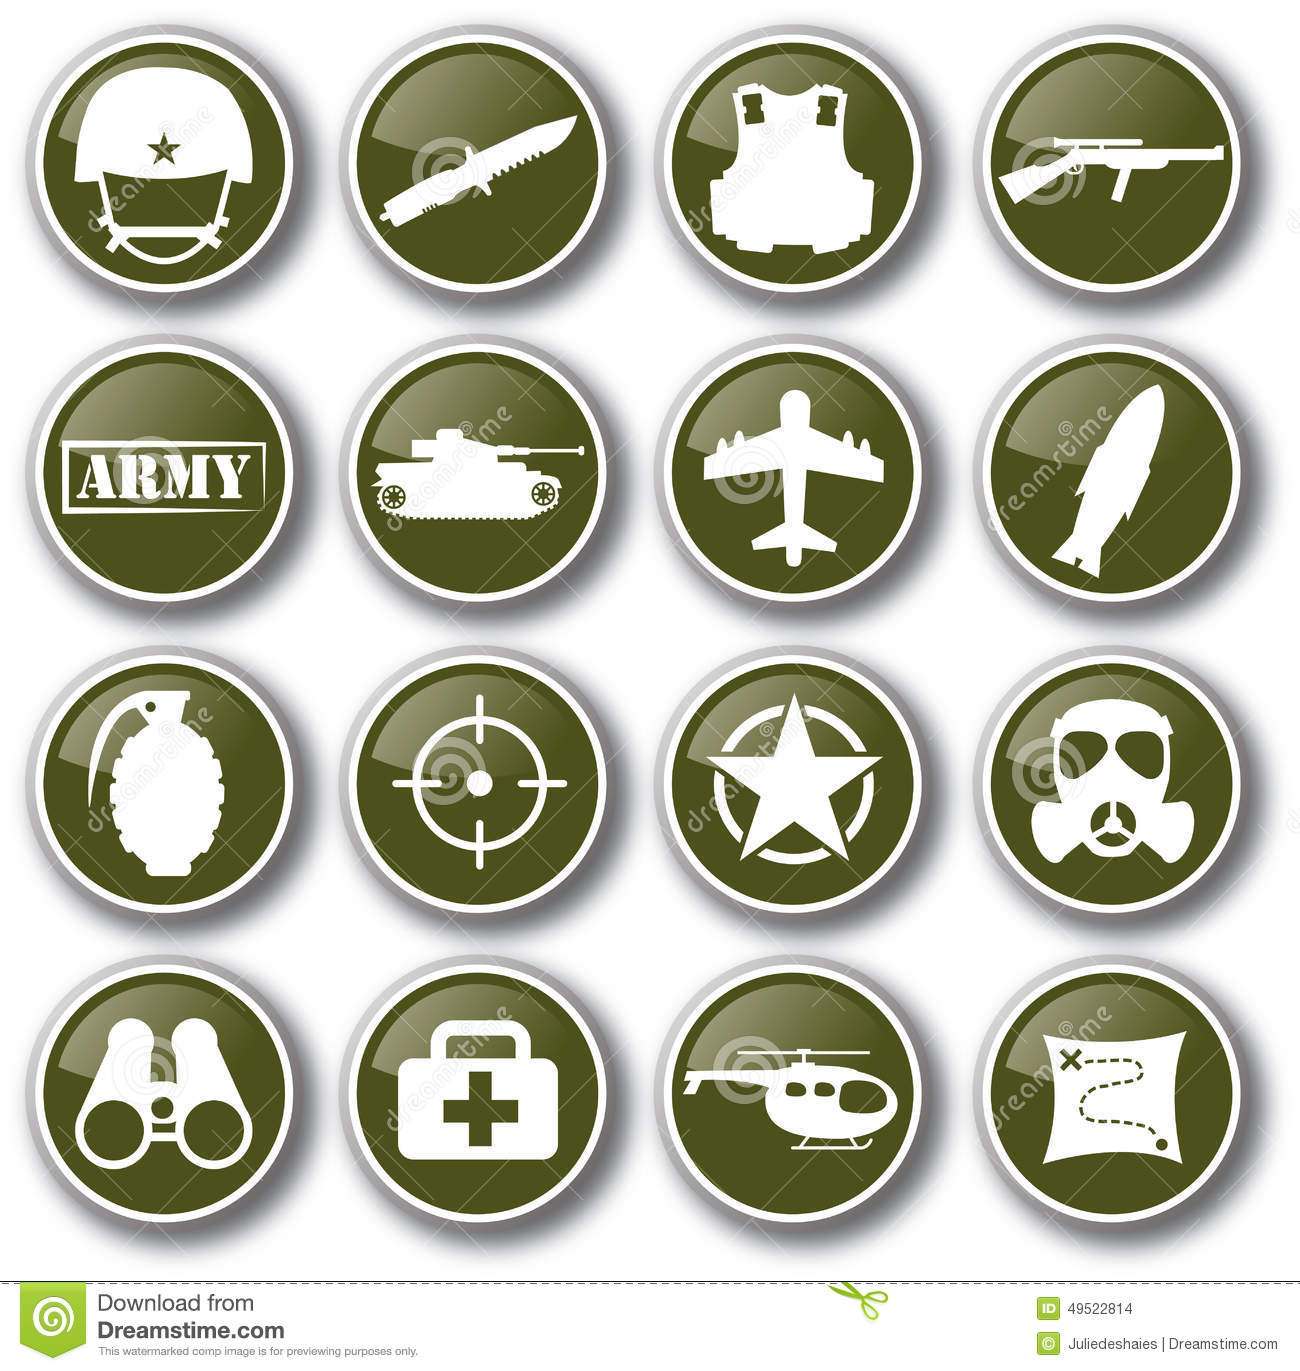 Military army icon set vector illustration.